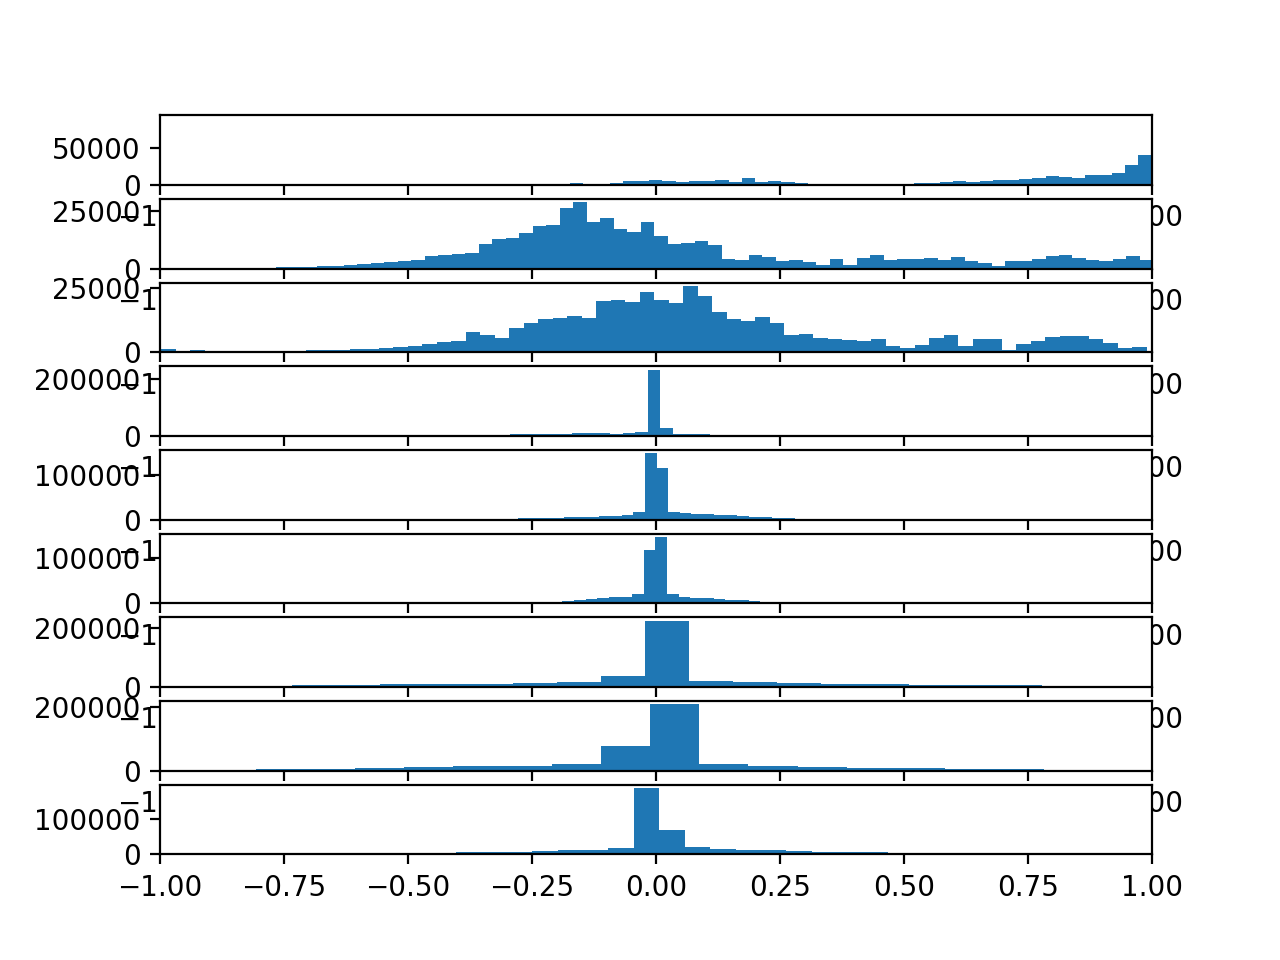 Histograms of each variable in the training data set